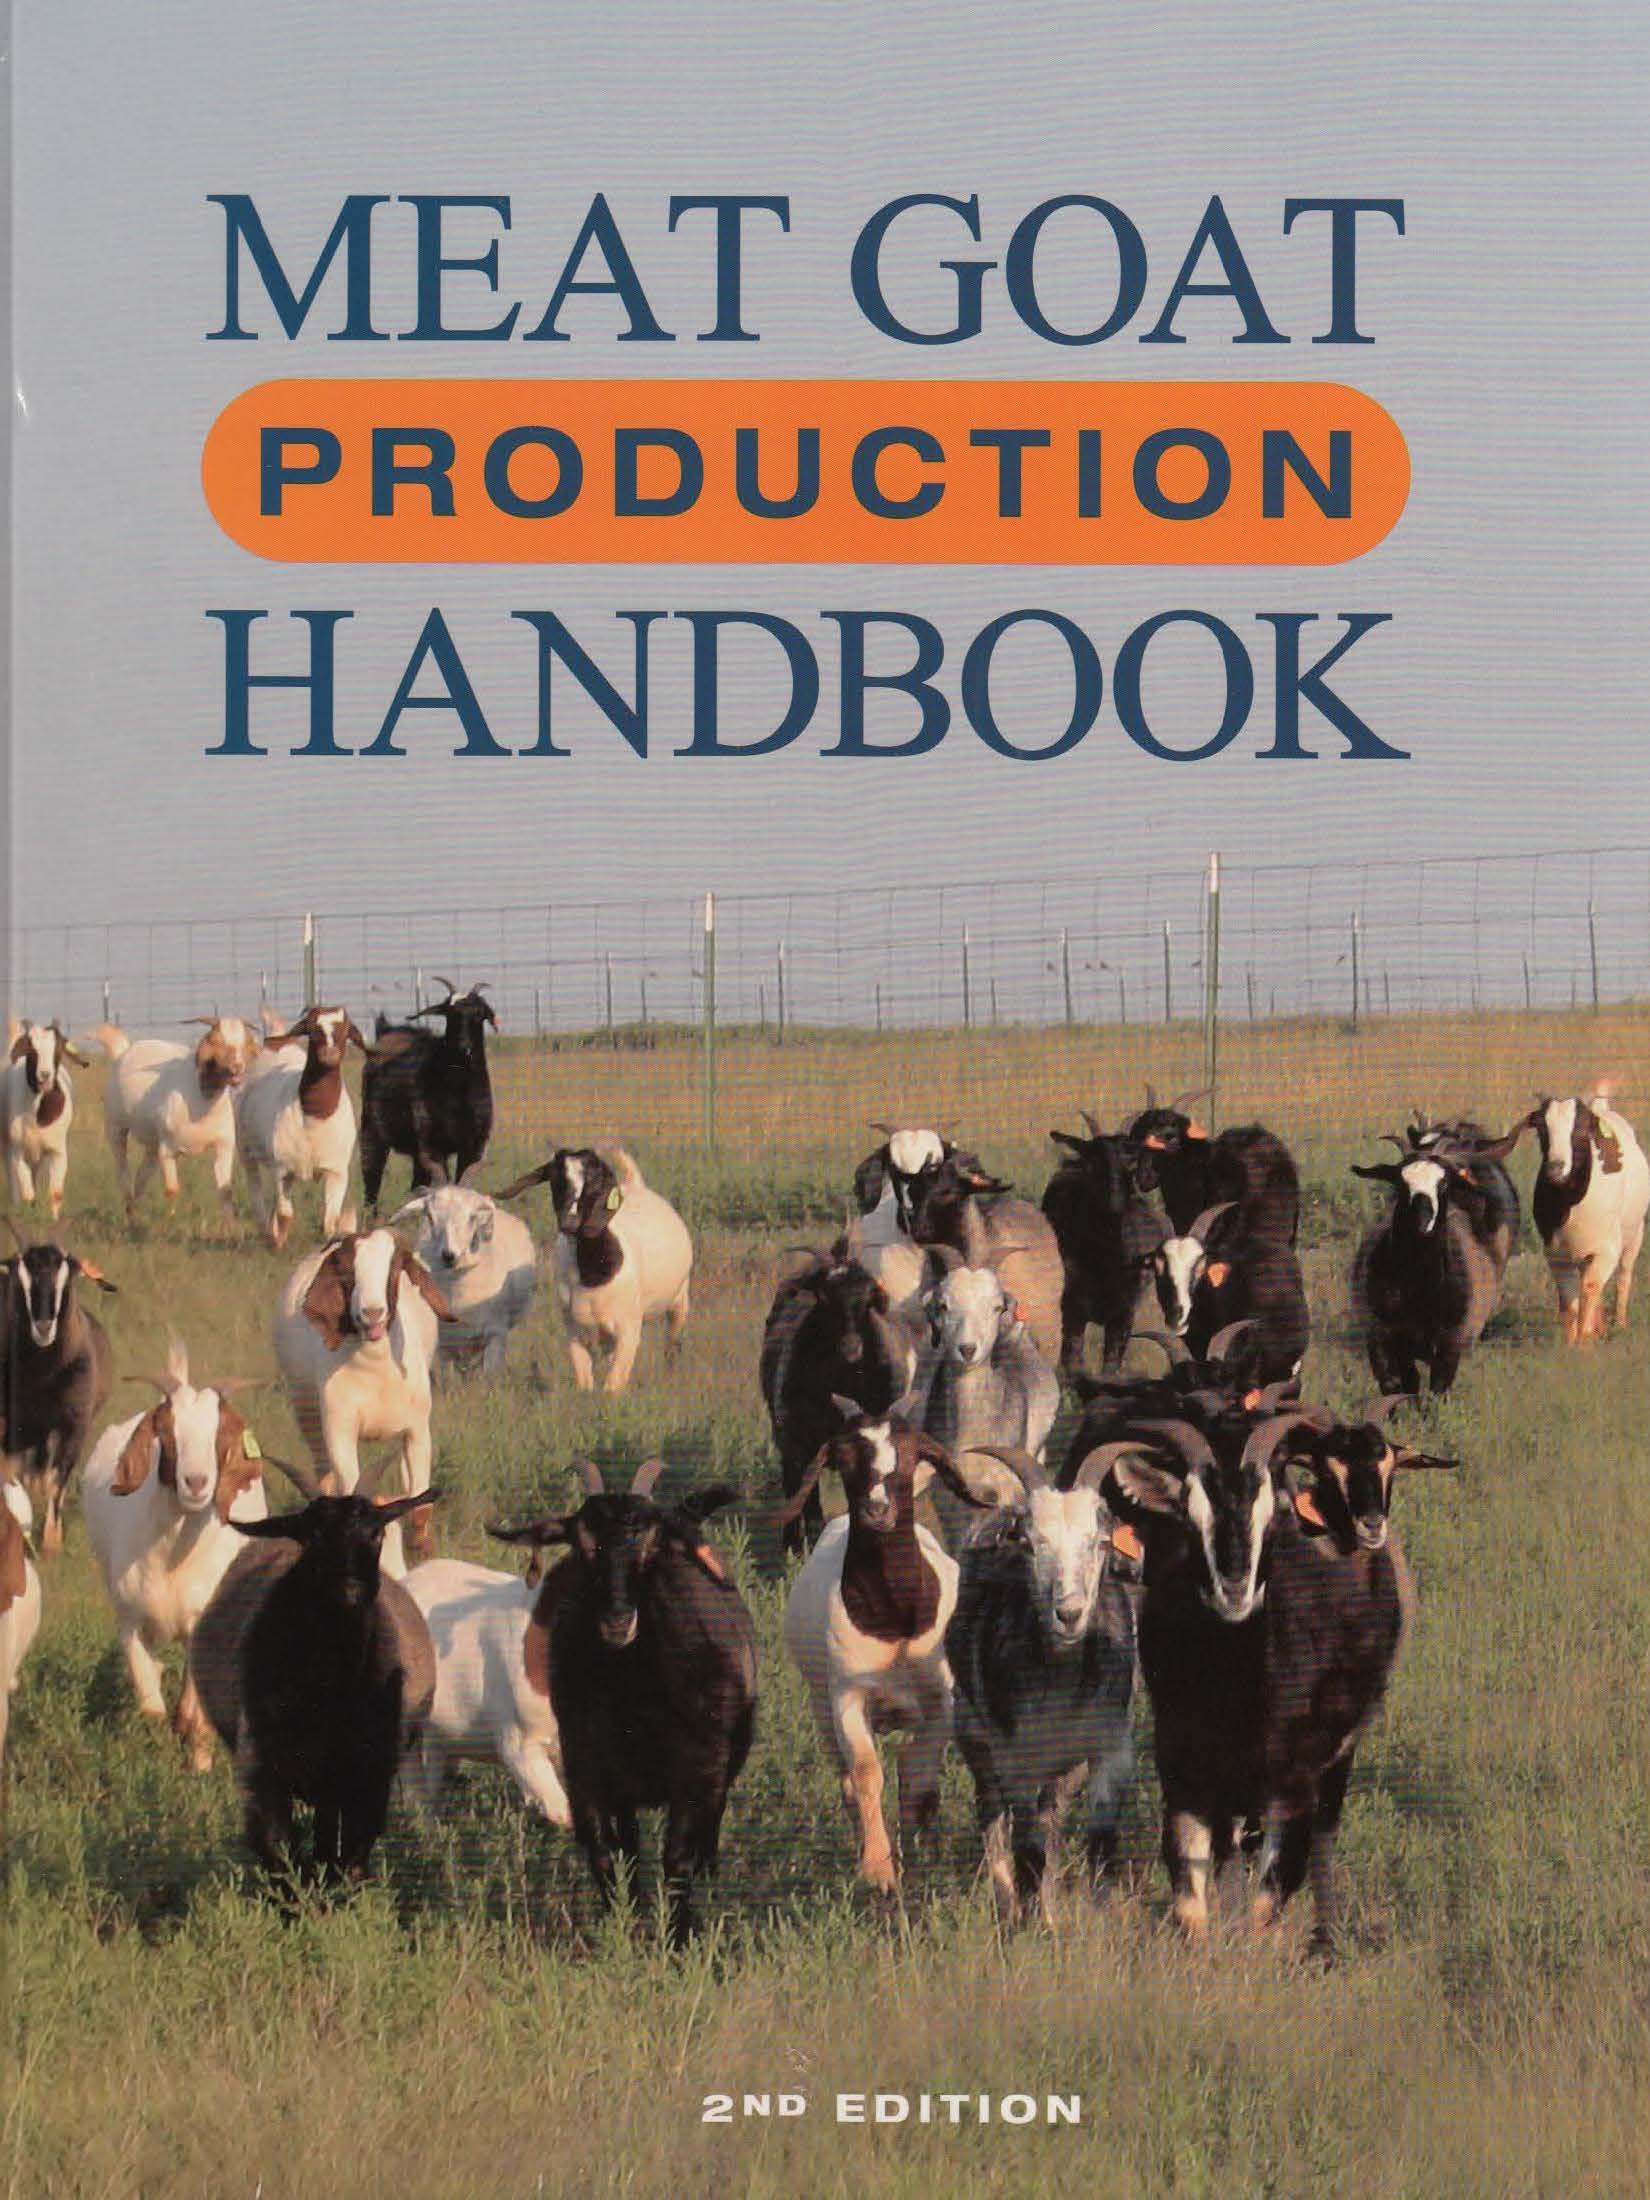 Meat Goat Production Handbook - 2nd Edition